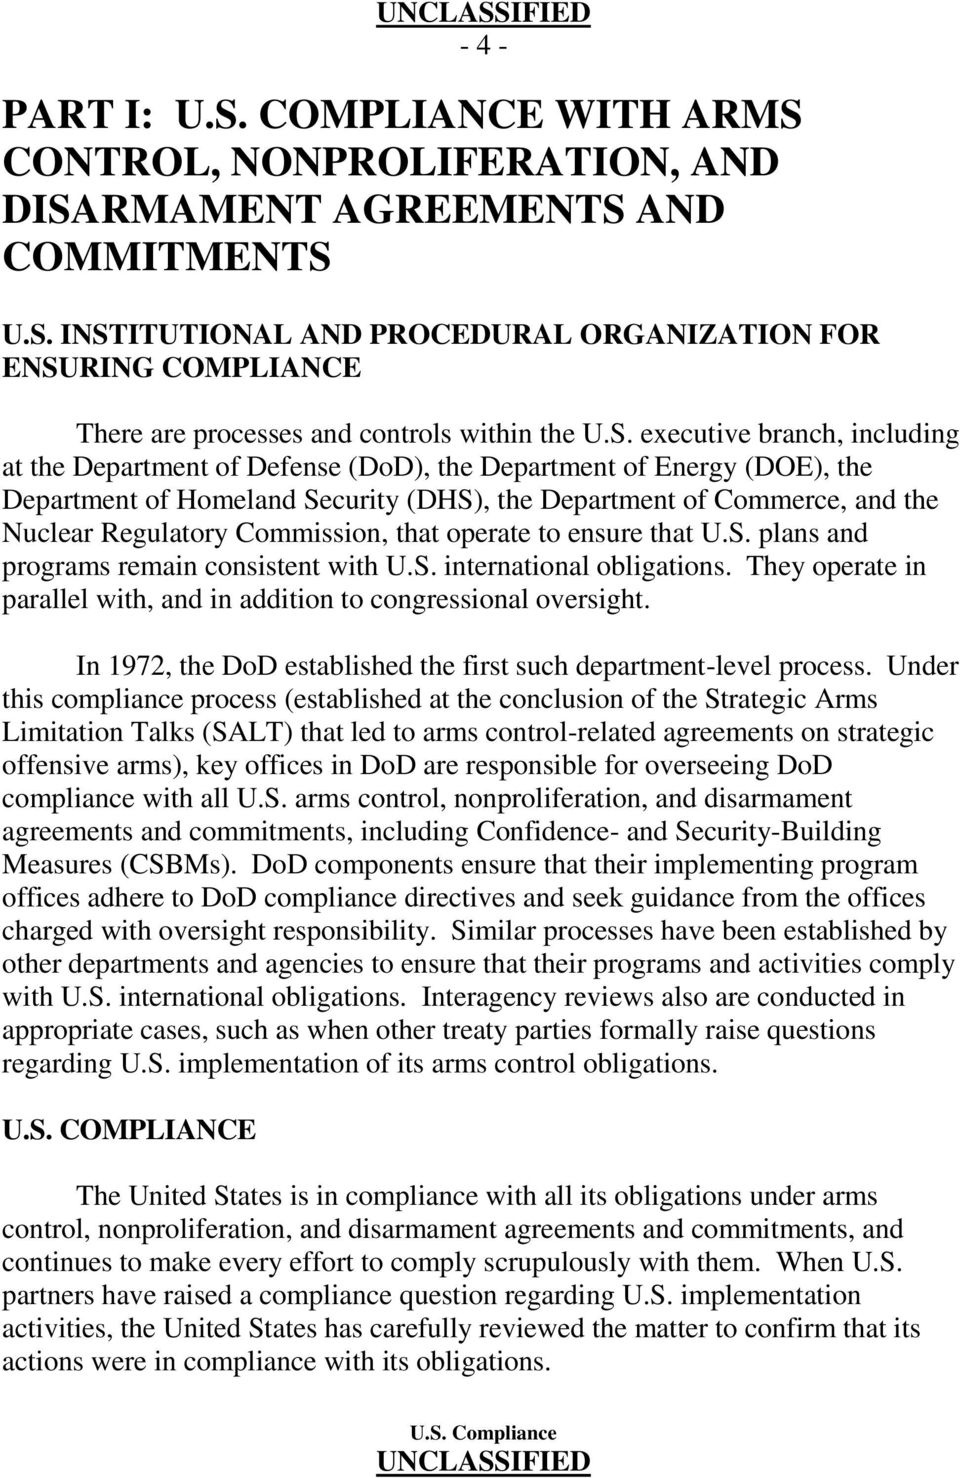 Commission, that operate to ensure that U.S. plans and programs remain consistent with U.S. international obligations. They operate in parallel with, and in addition to congressional oversight.